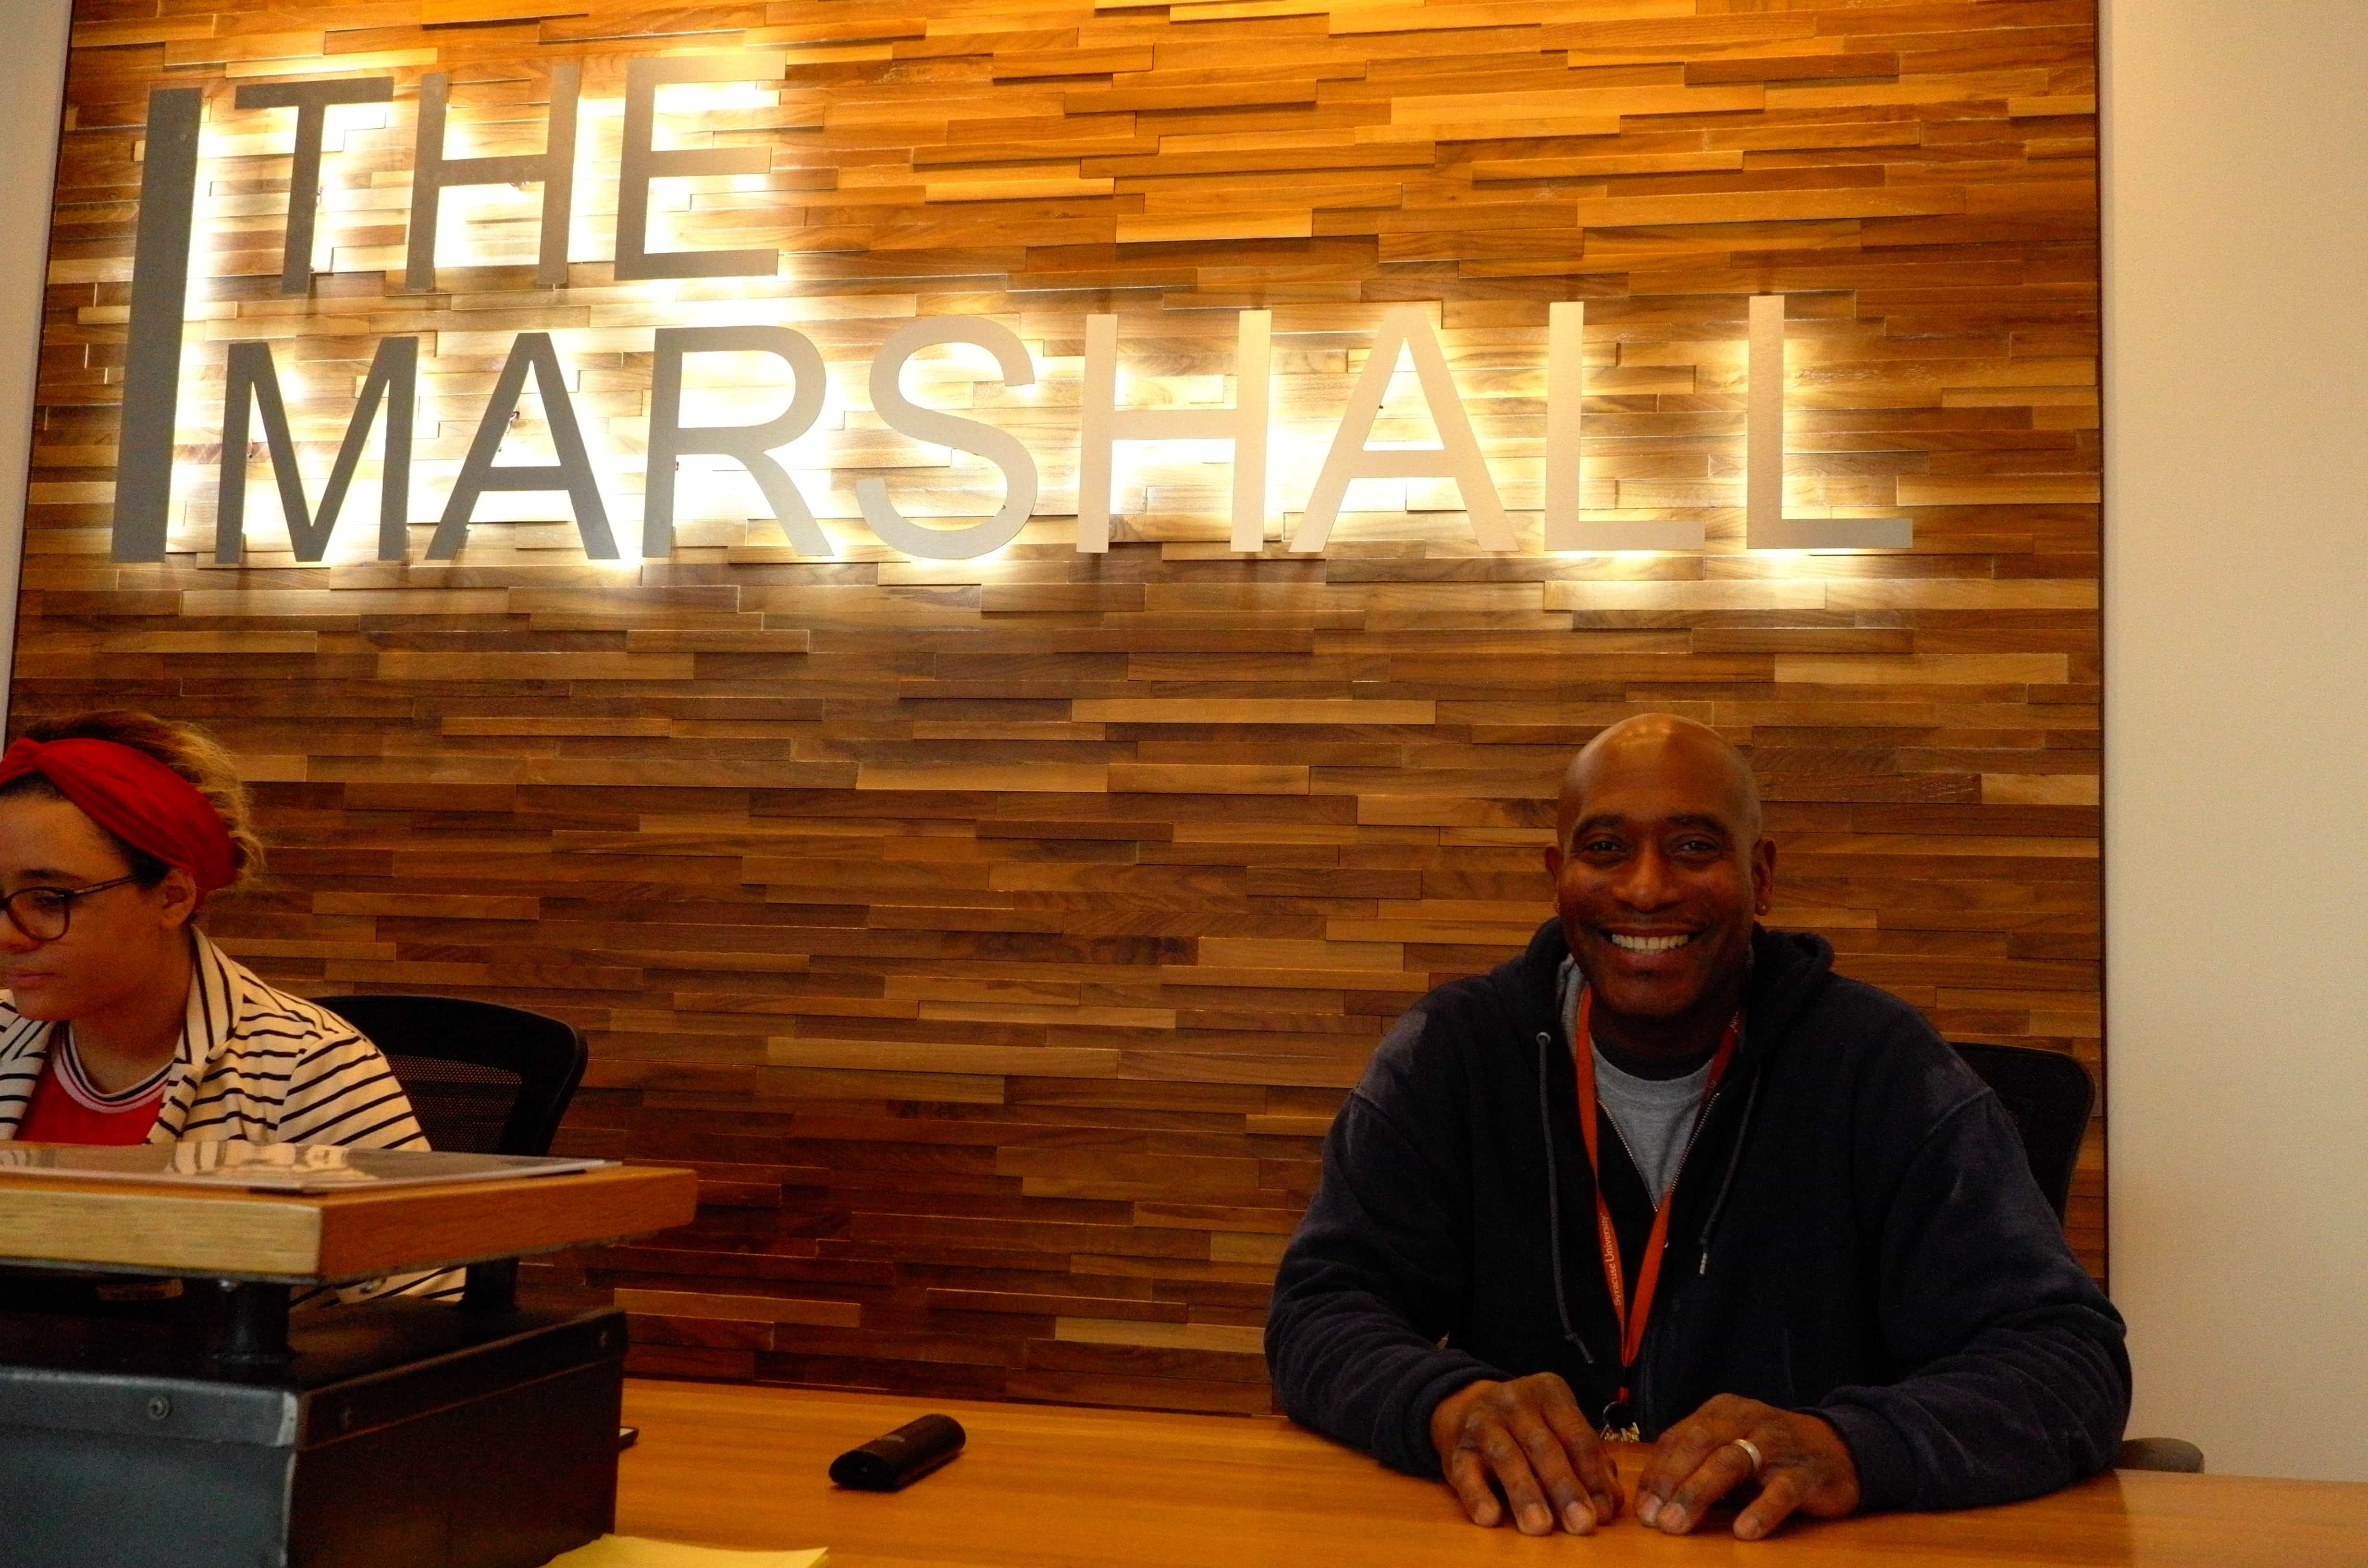 Ken Culley stands at The Marshall desk.